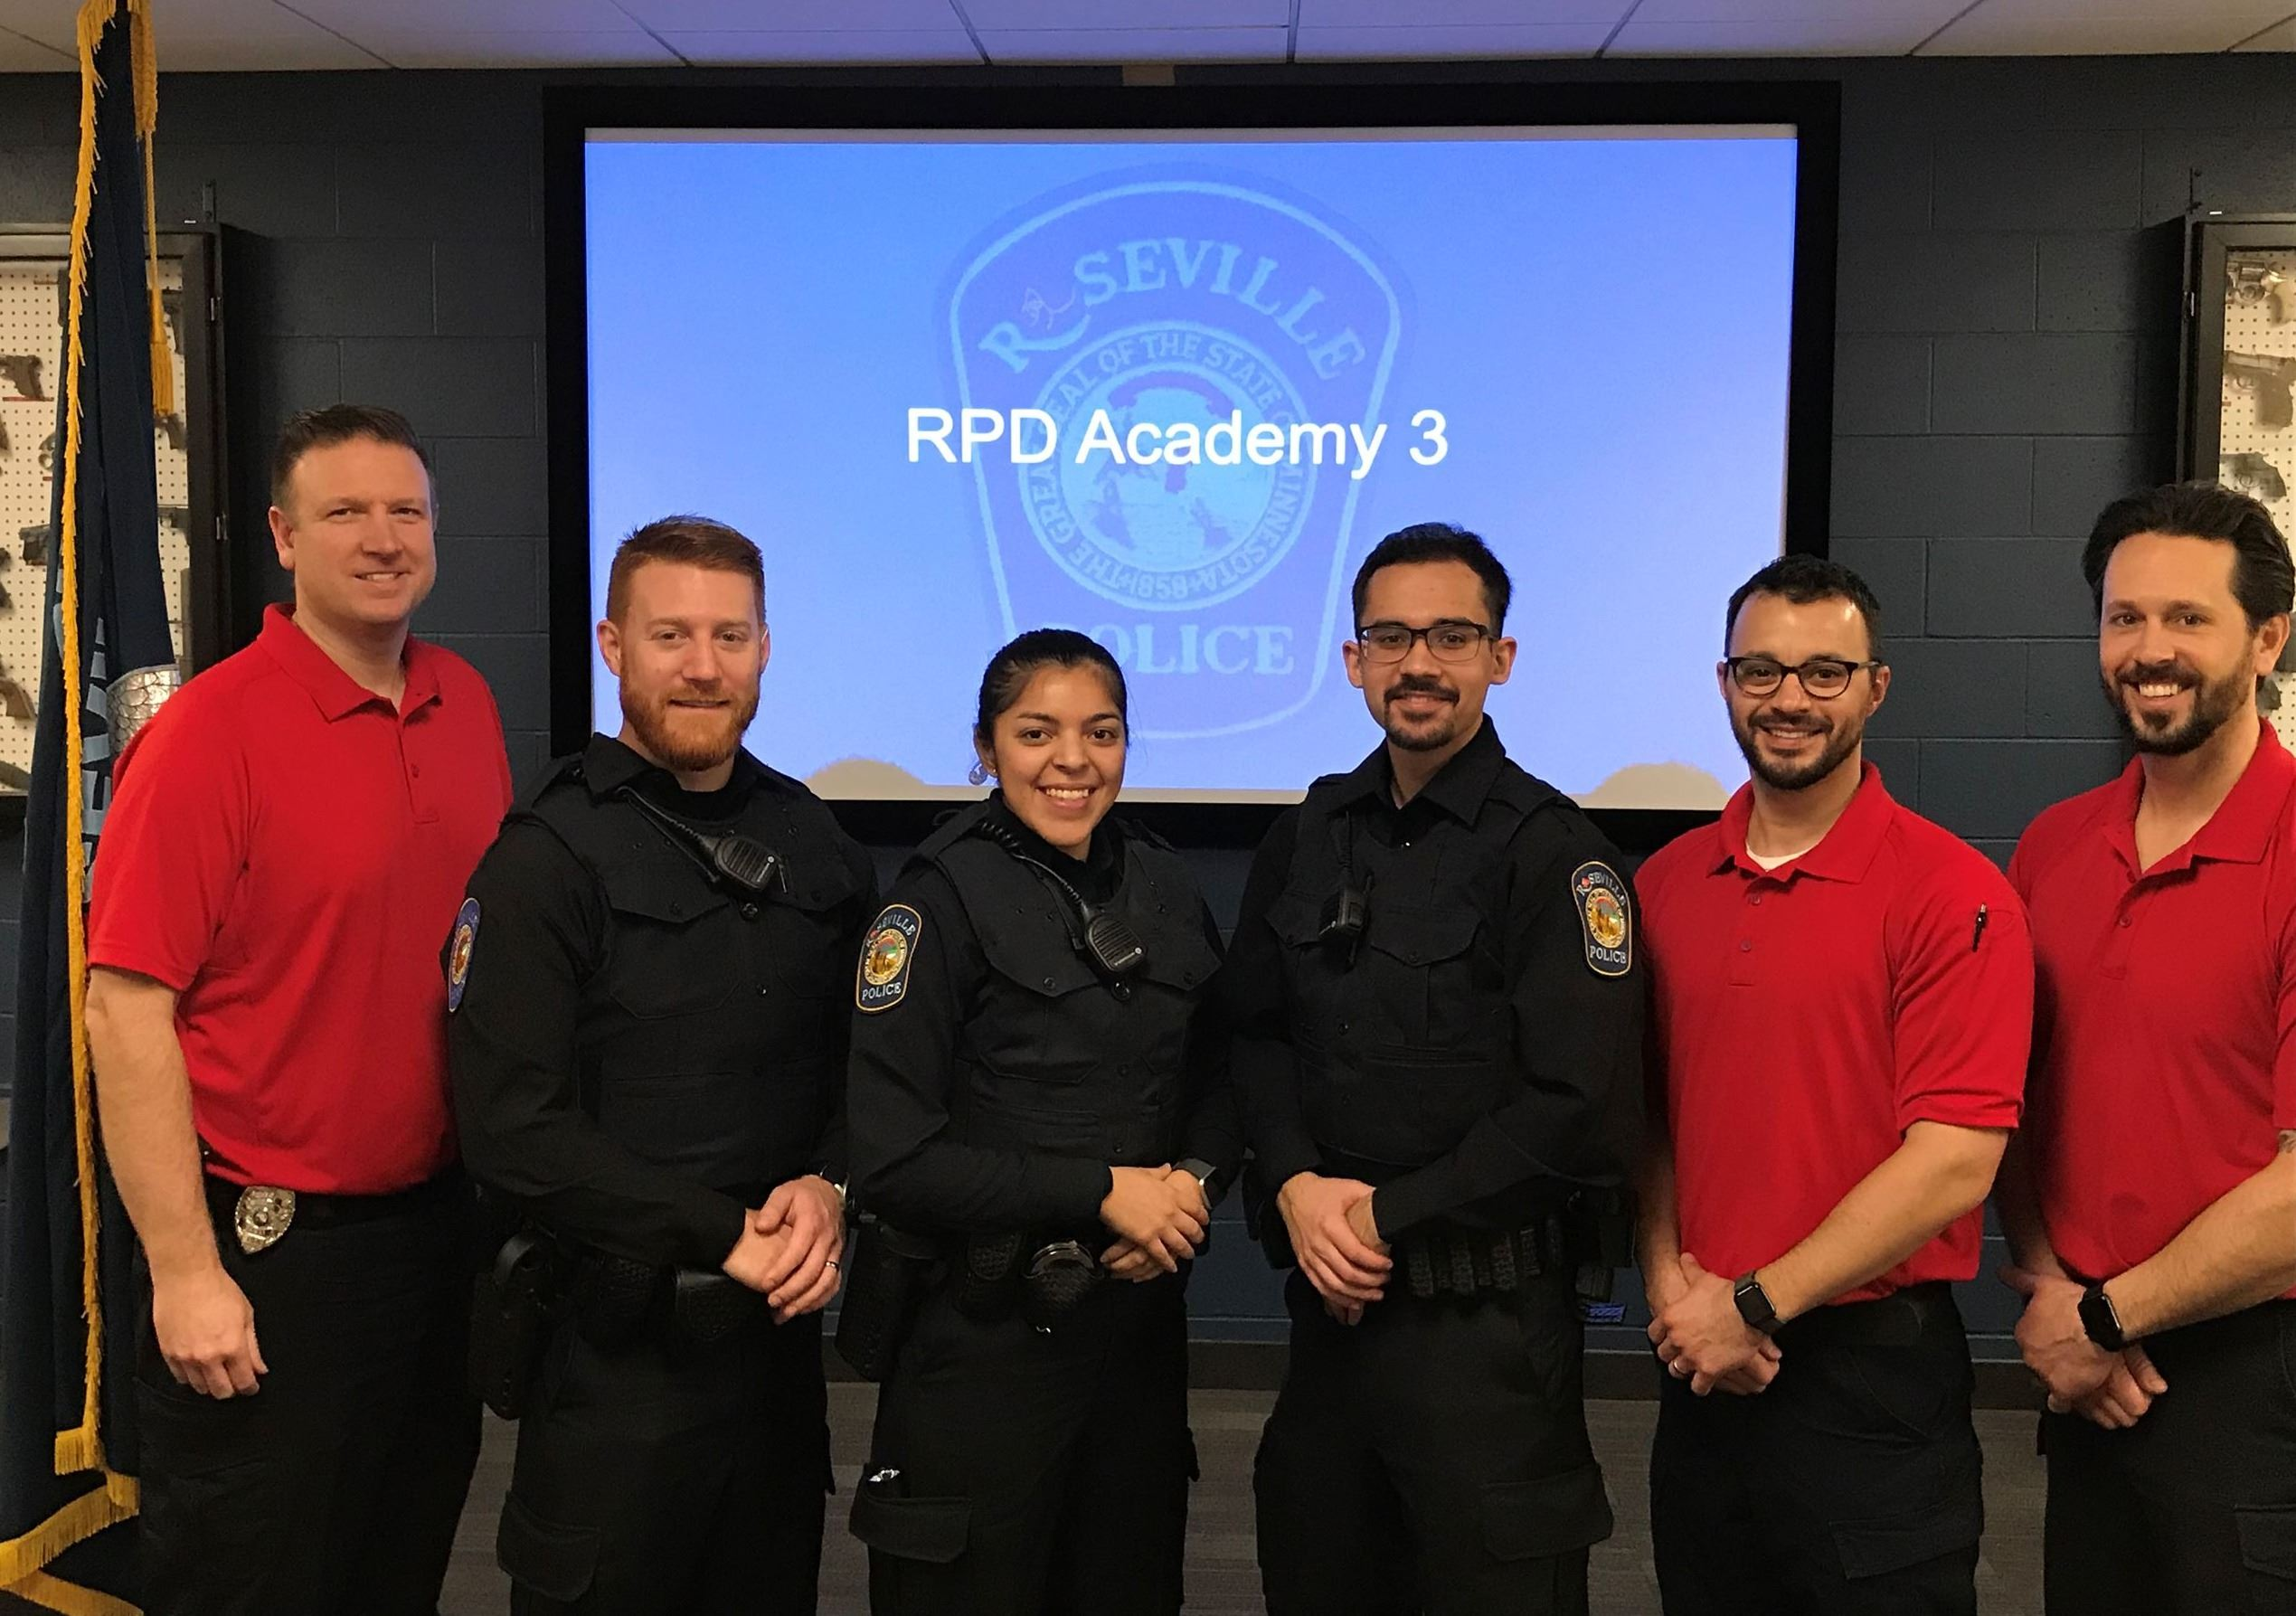 RPD's New Recruit Academy